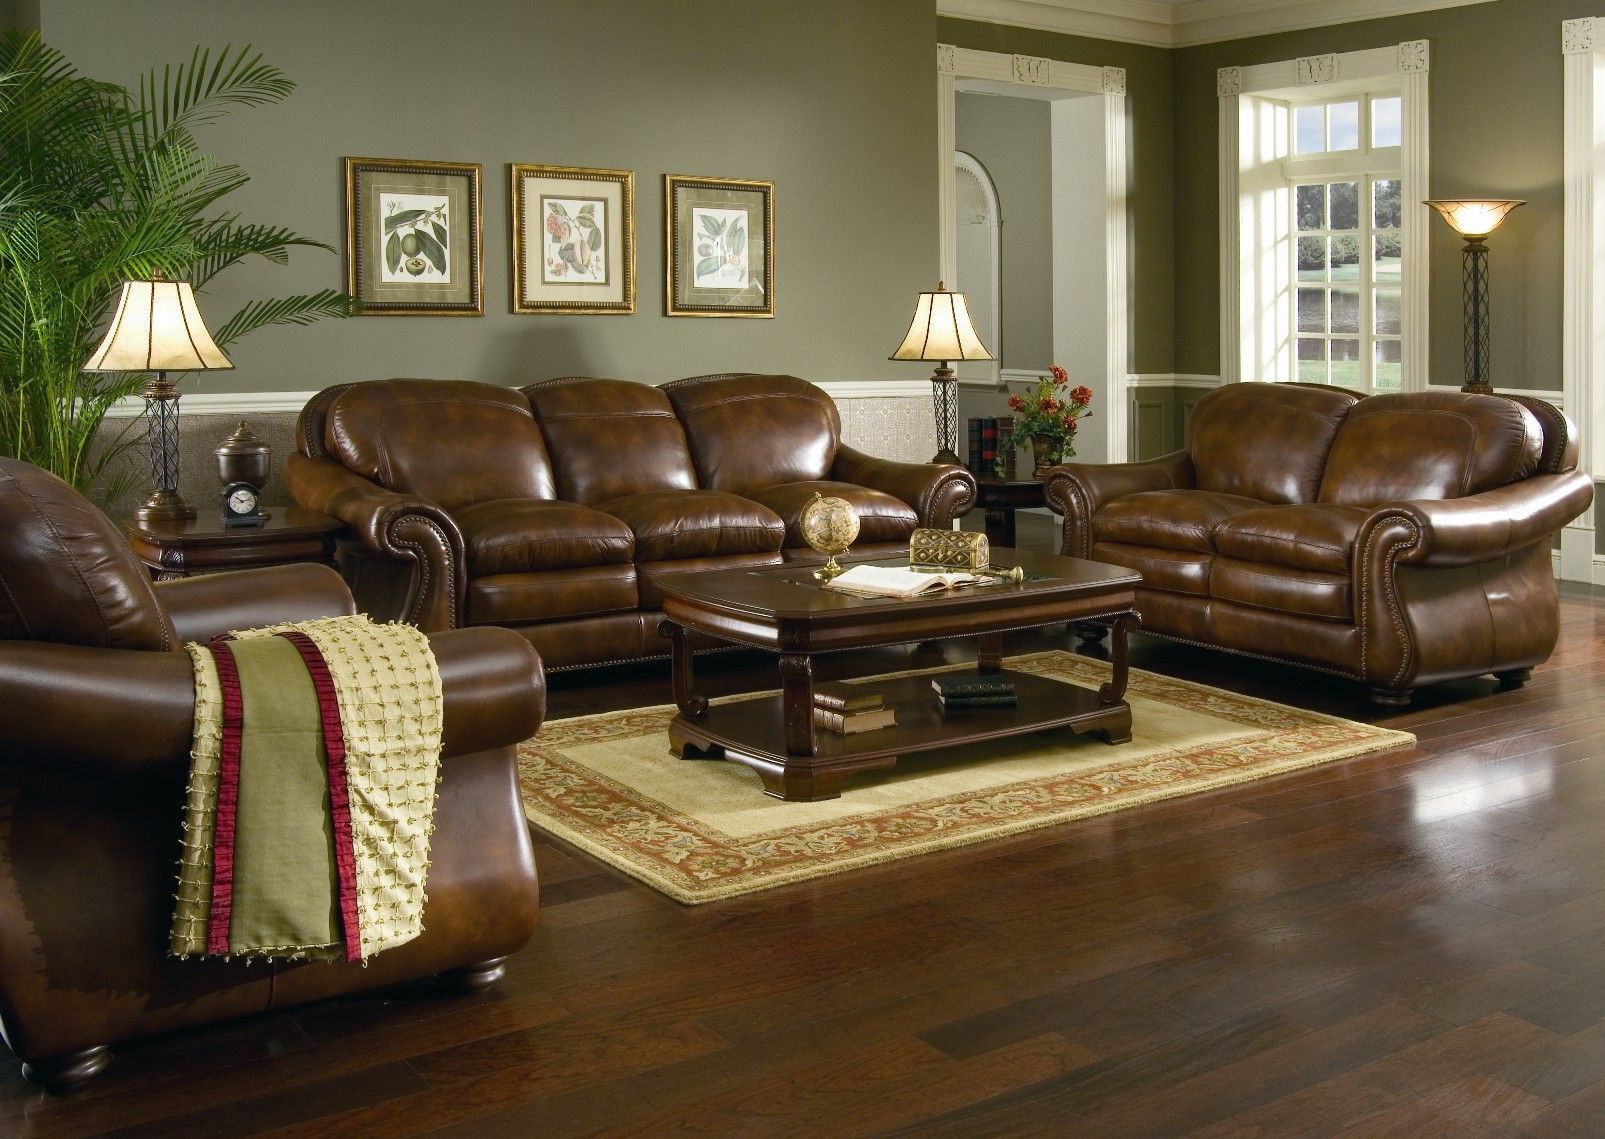 Brown and green living room - Brown Leather Sofa Set For Living Room With Dark Hardwood Floors